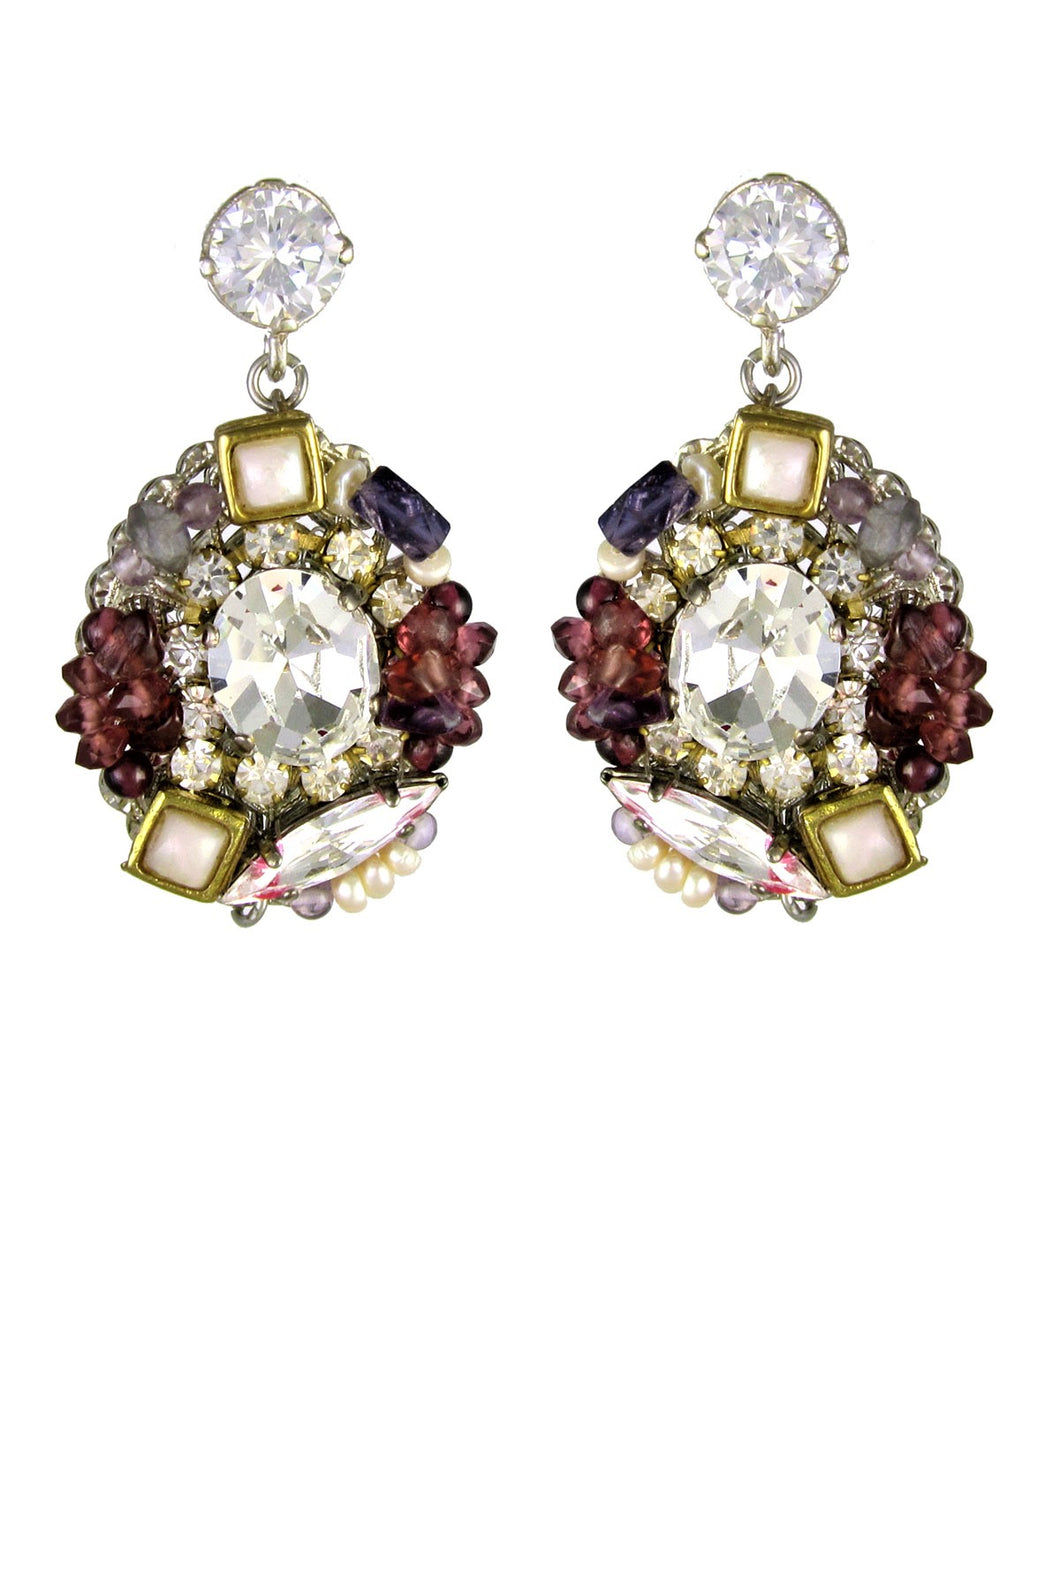 SALE - Claire Swarovski Crystals, Semiprecious Stones and  Pearl Earrings